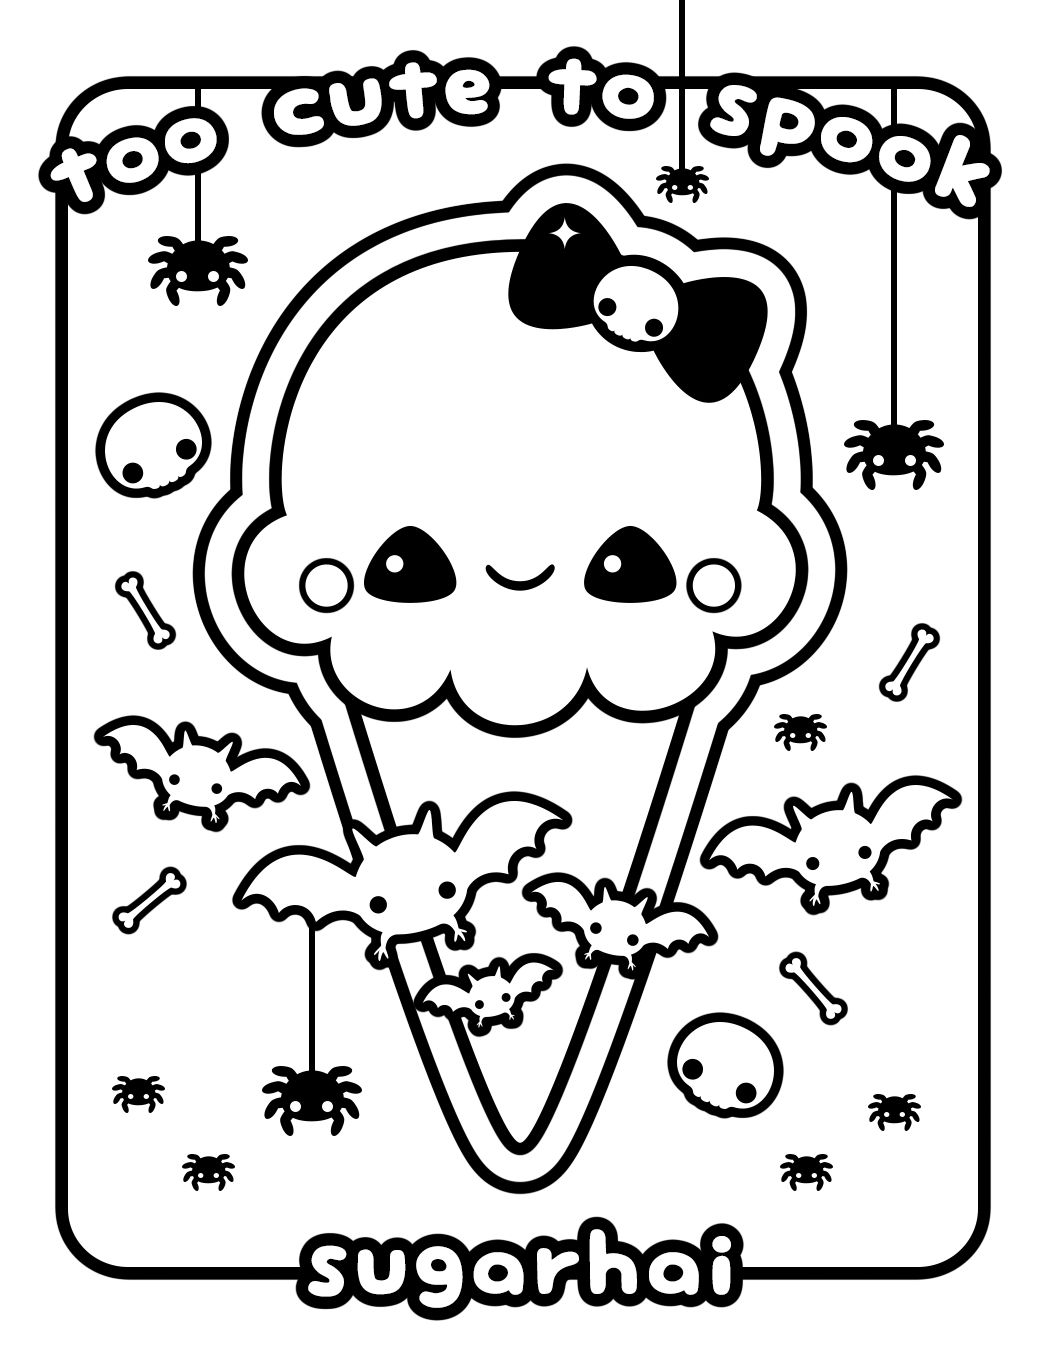 Printable Kawaii Coloring Pages Coloringsuite Free Coloring Pages Download Disney Coloring Pages Cute Coloring Pages Halloween Coloring